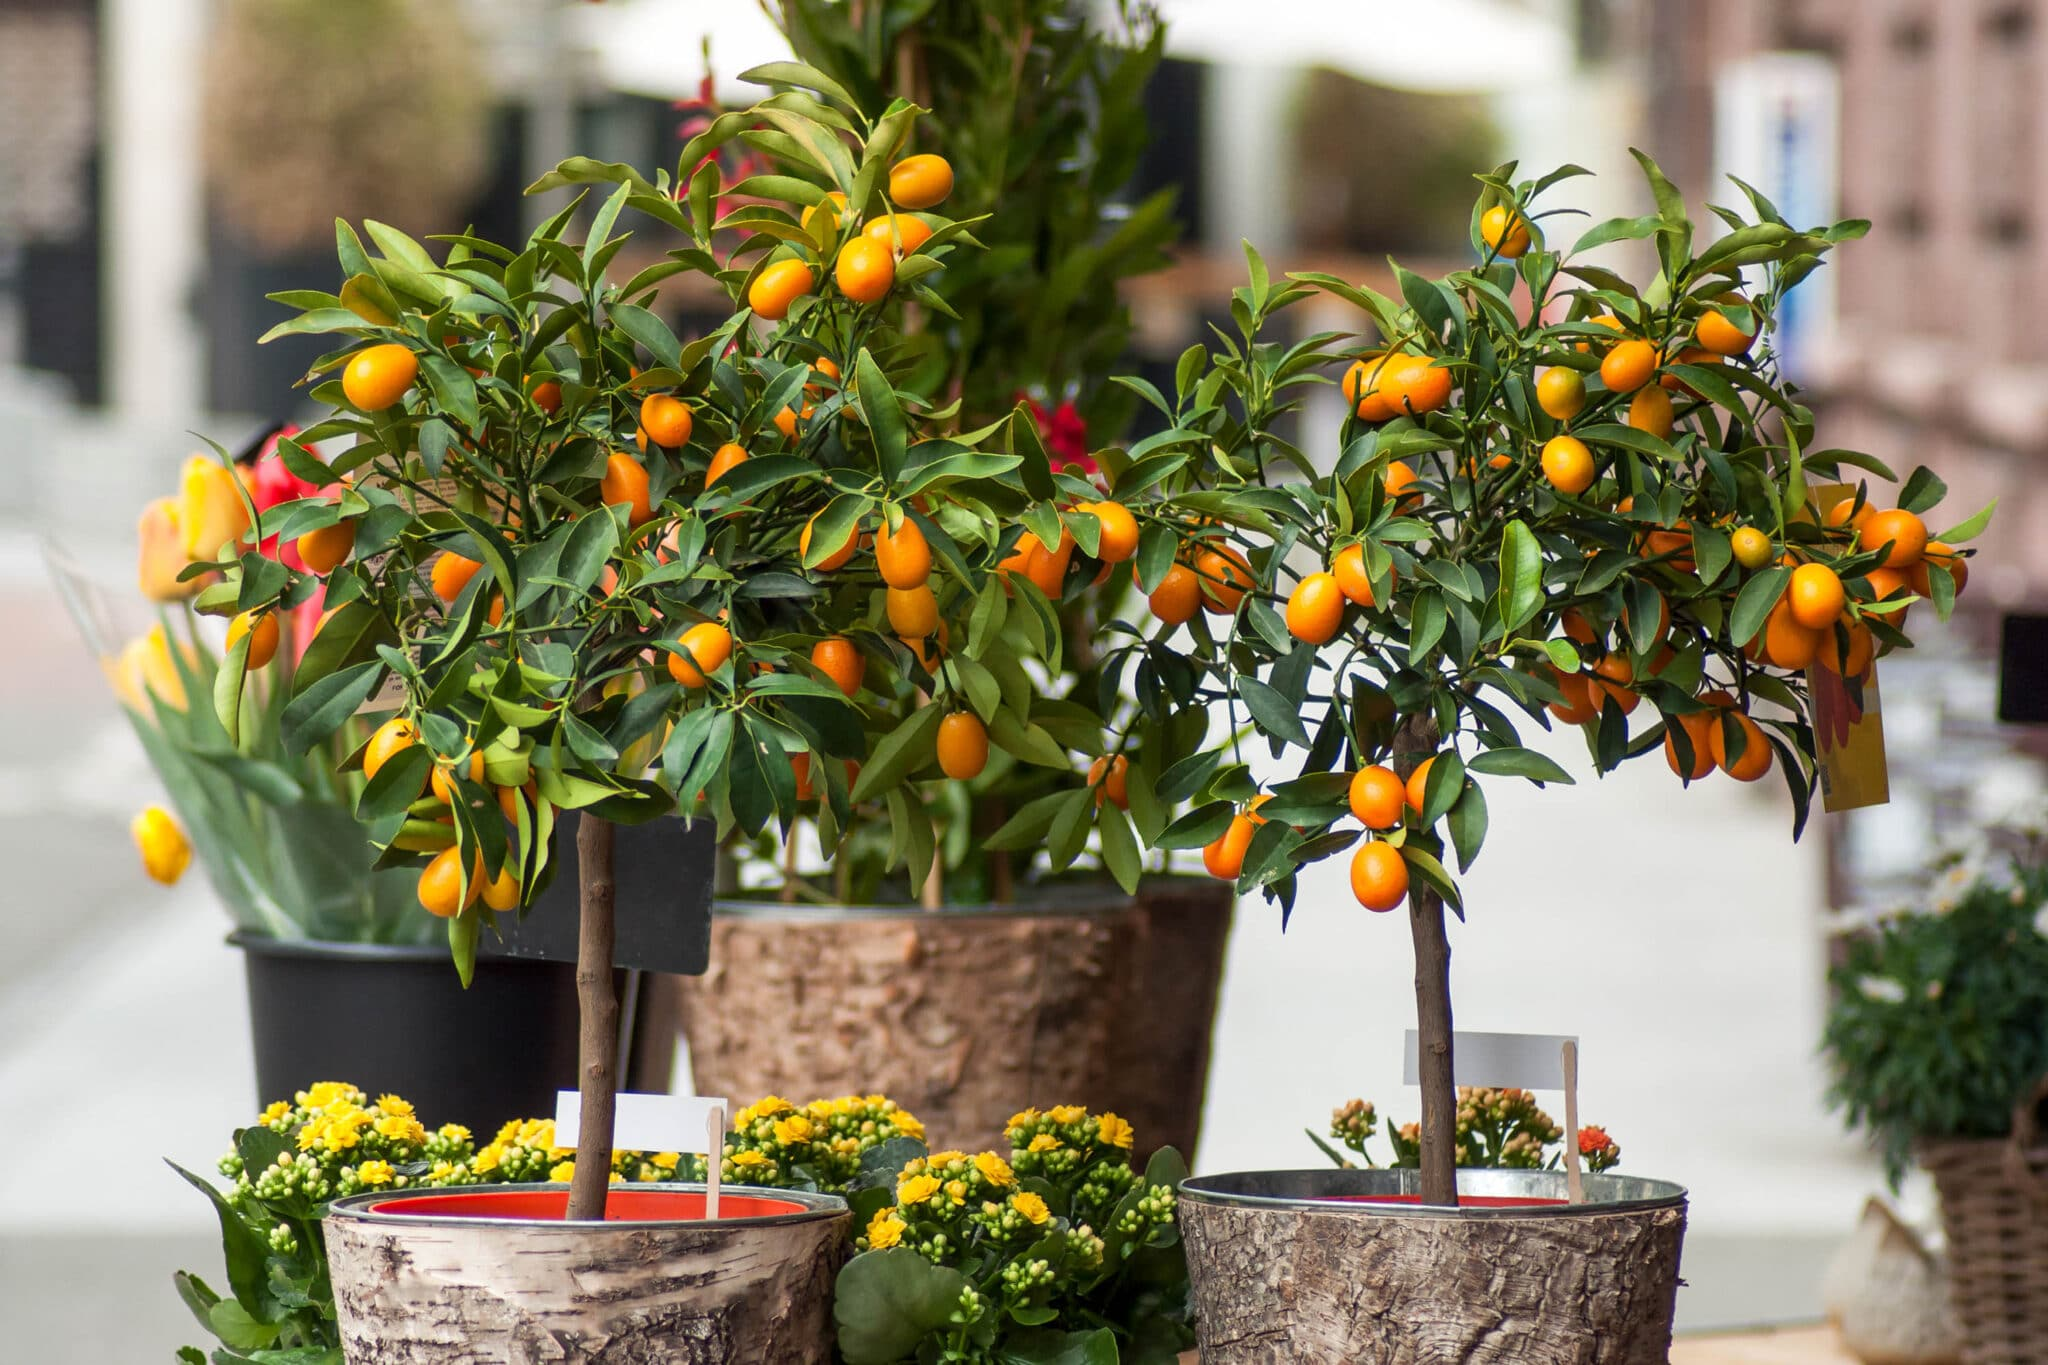 Two small orange trees growing in pots.